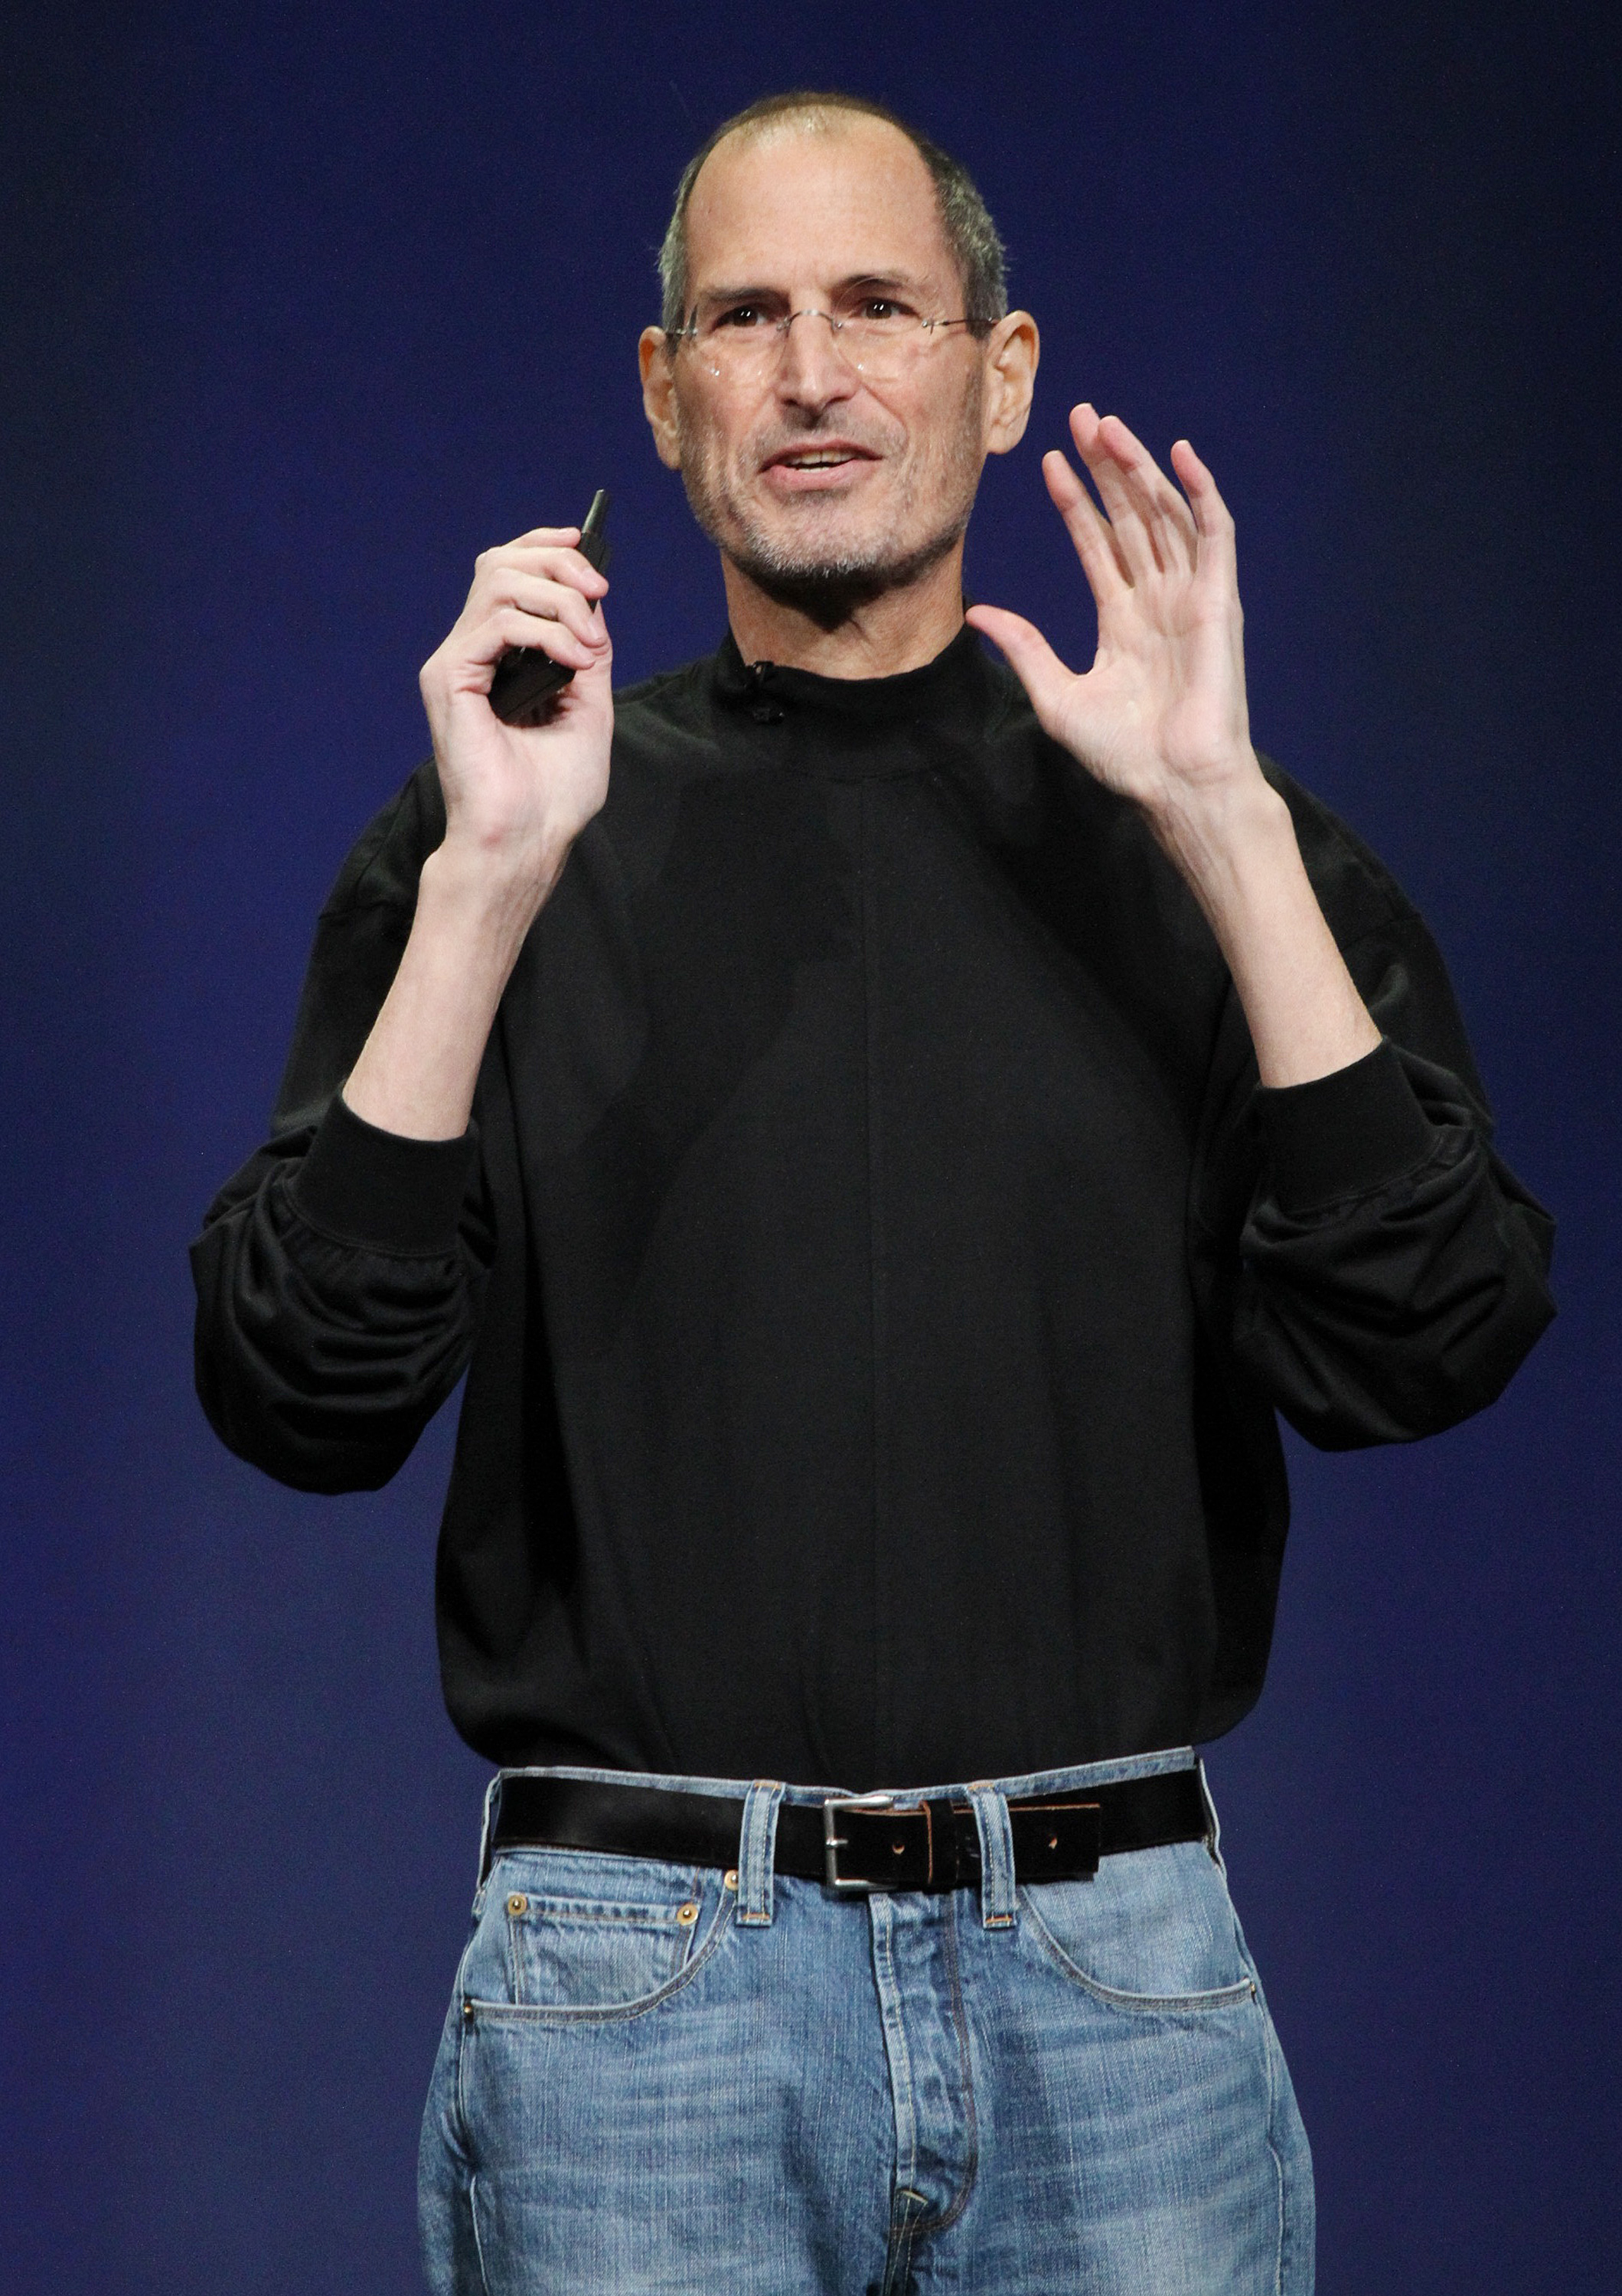 Apple Inc. CEO Steve Jobs introduces the iPad 2 on stage during an Apple event in San Francisco, California March 2, 2011. Jobs took the stage to a standing ovation on Wednesday, returning to the spotlight after a brief medical absence to unveil the second version of the iPad.